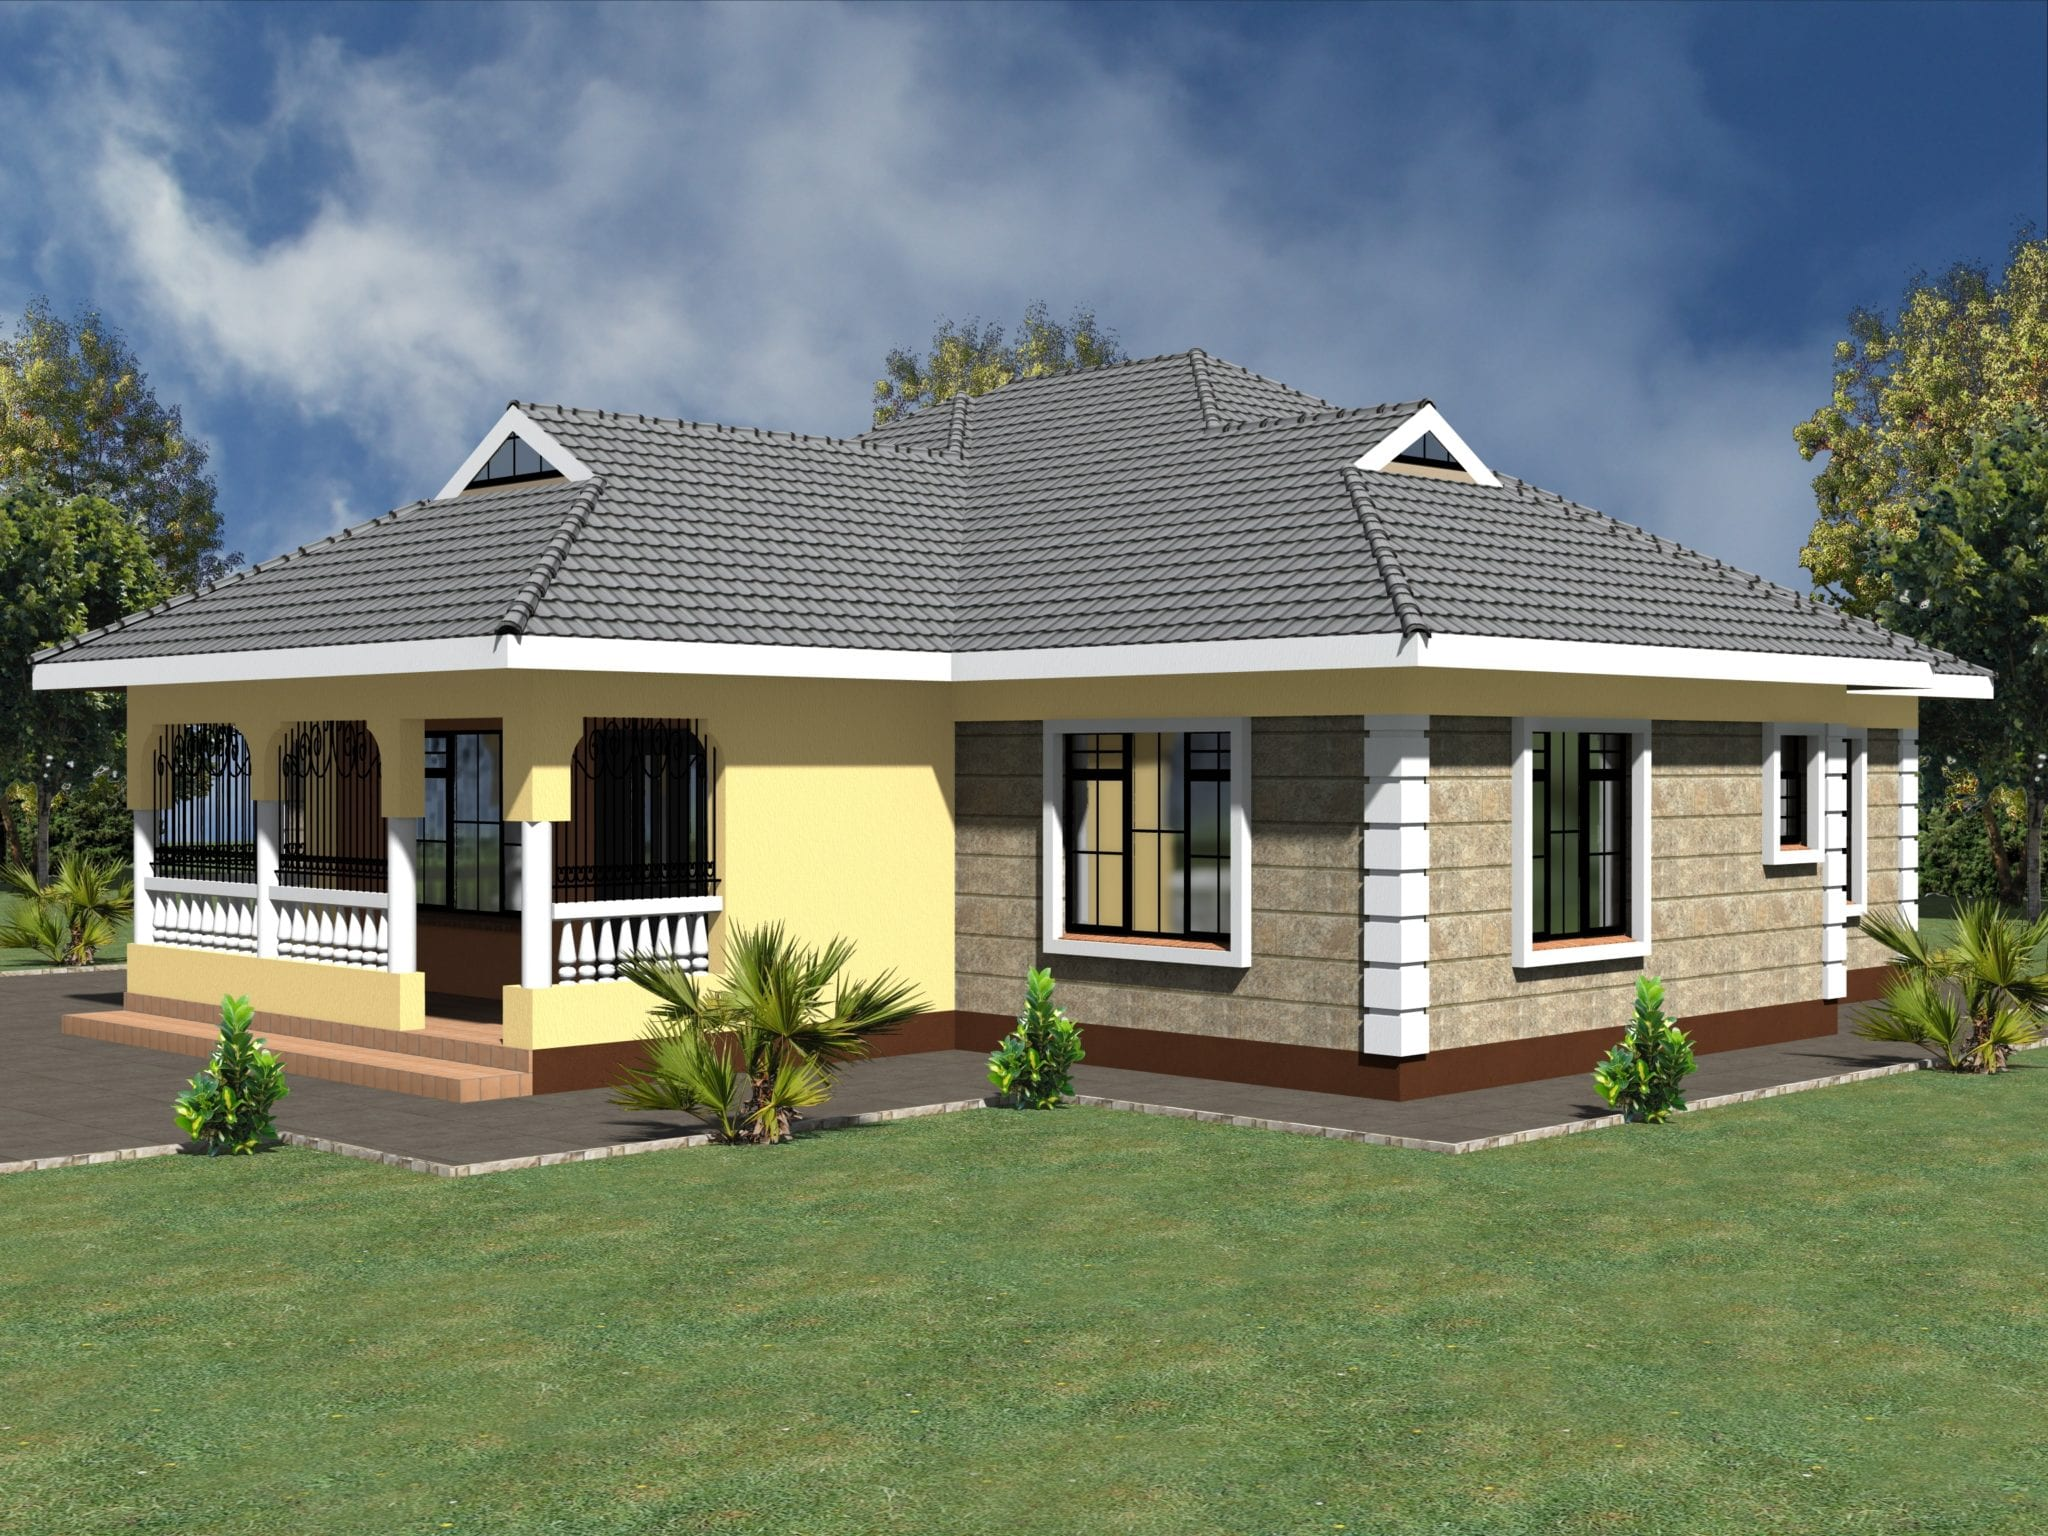 Simple 3 bedroom house plans without garage | HPD Consult